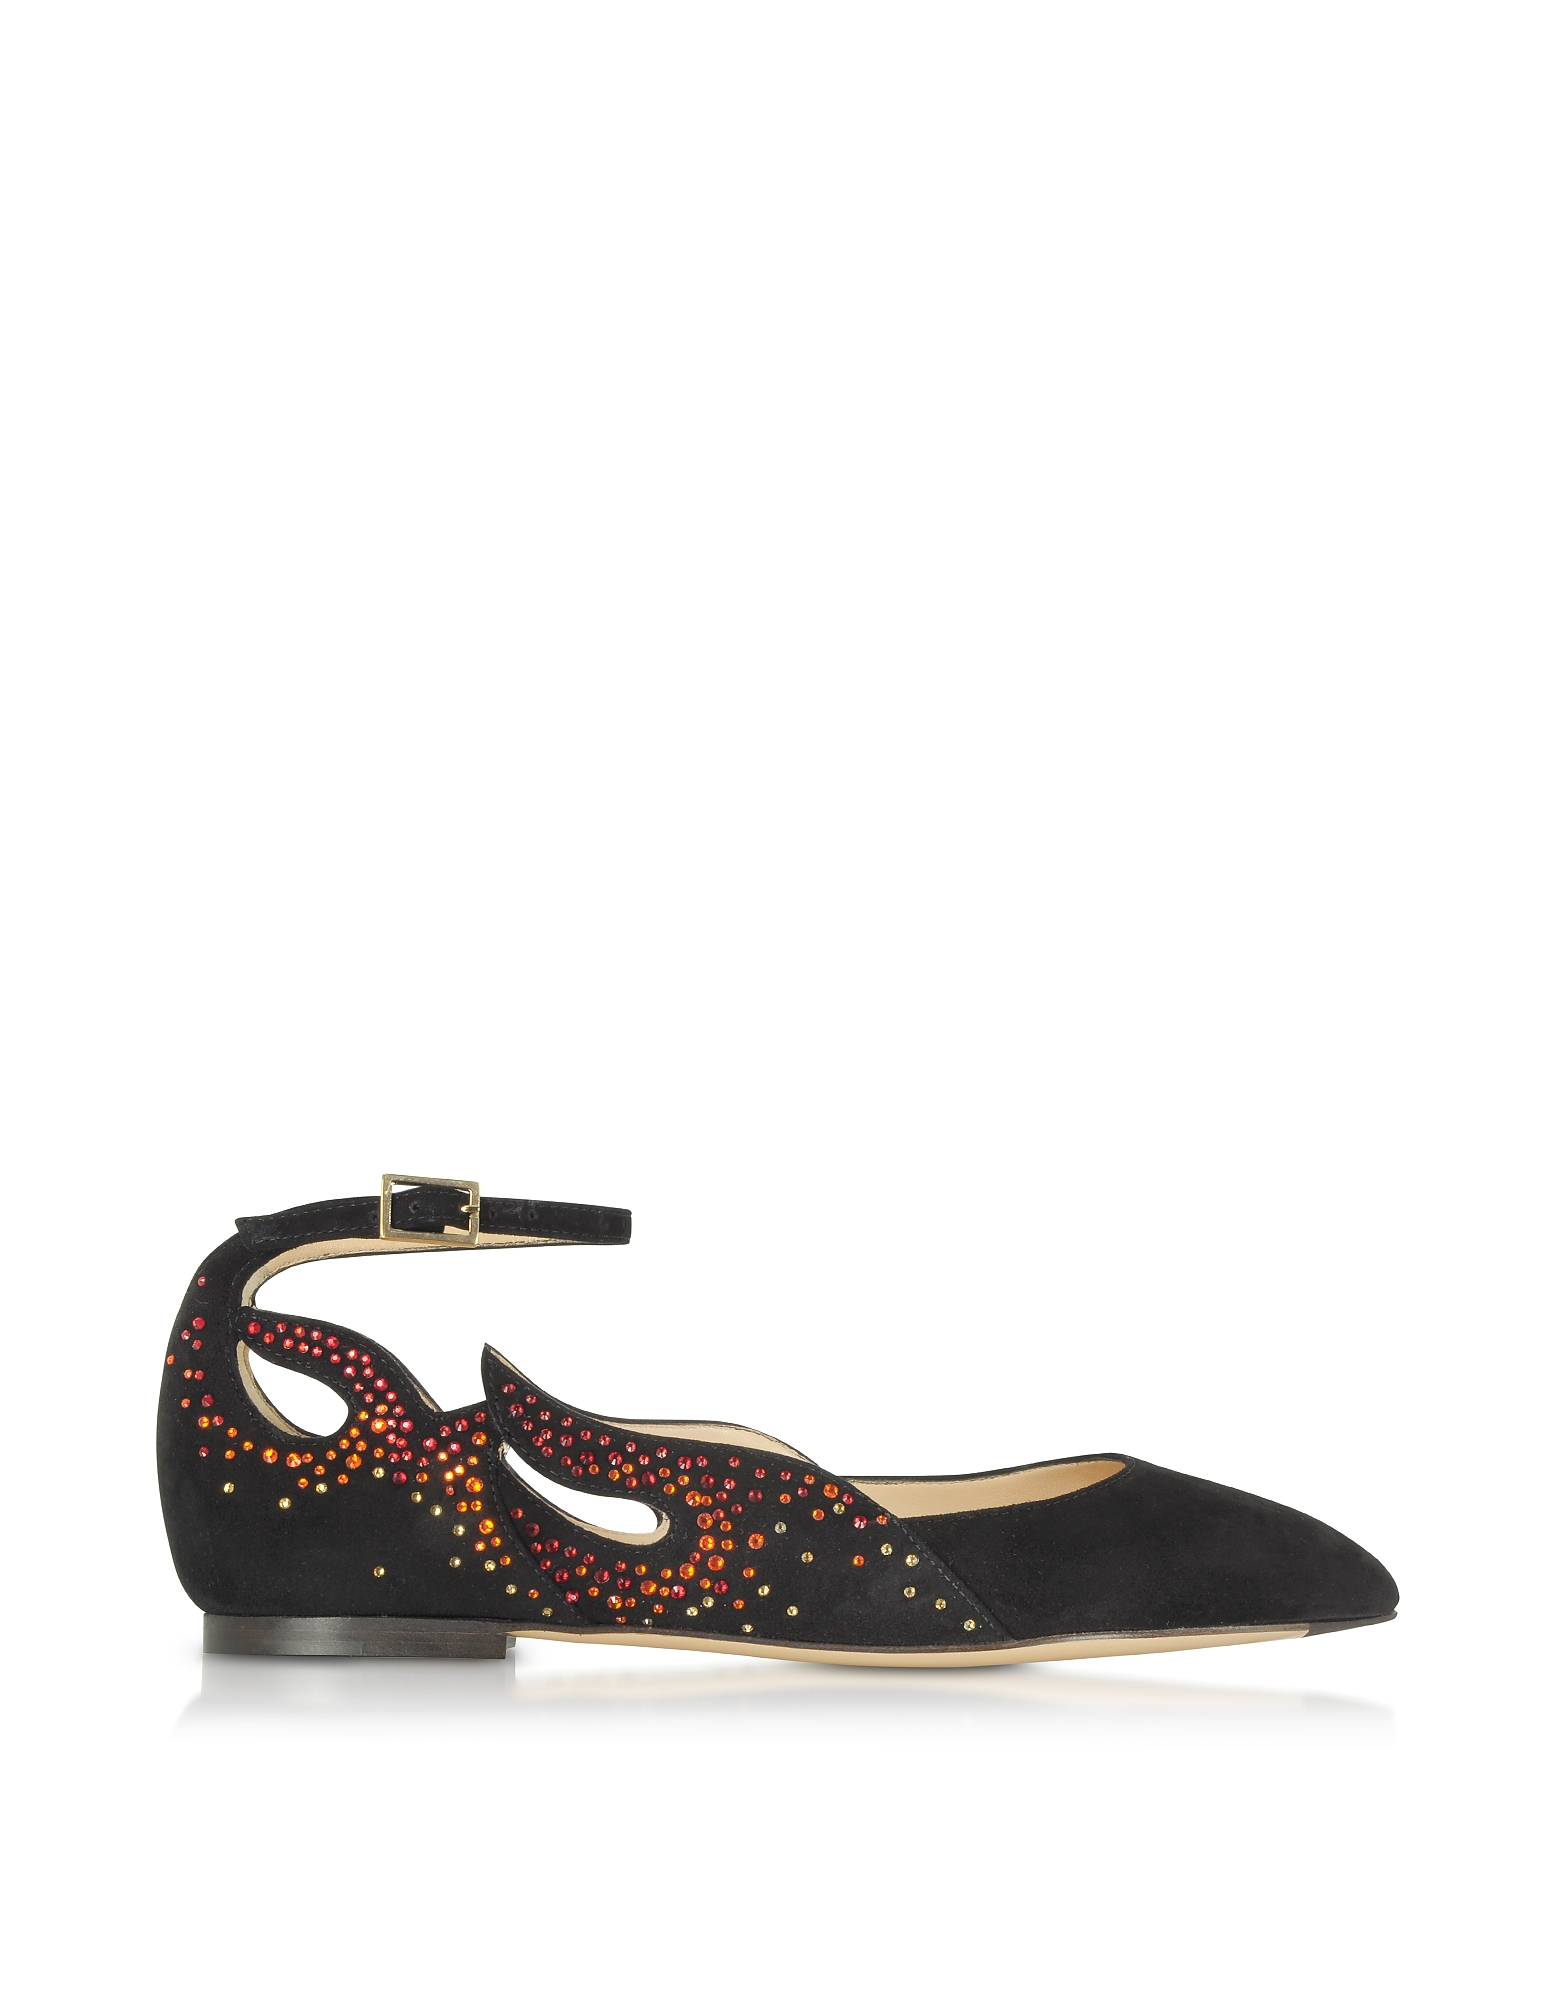 Charlotte Olympia Shoes, Feelin' Hot Hot Hot! Black Suede Ballerinas